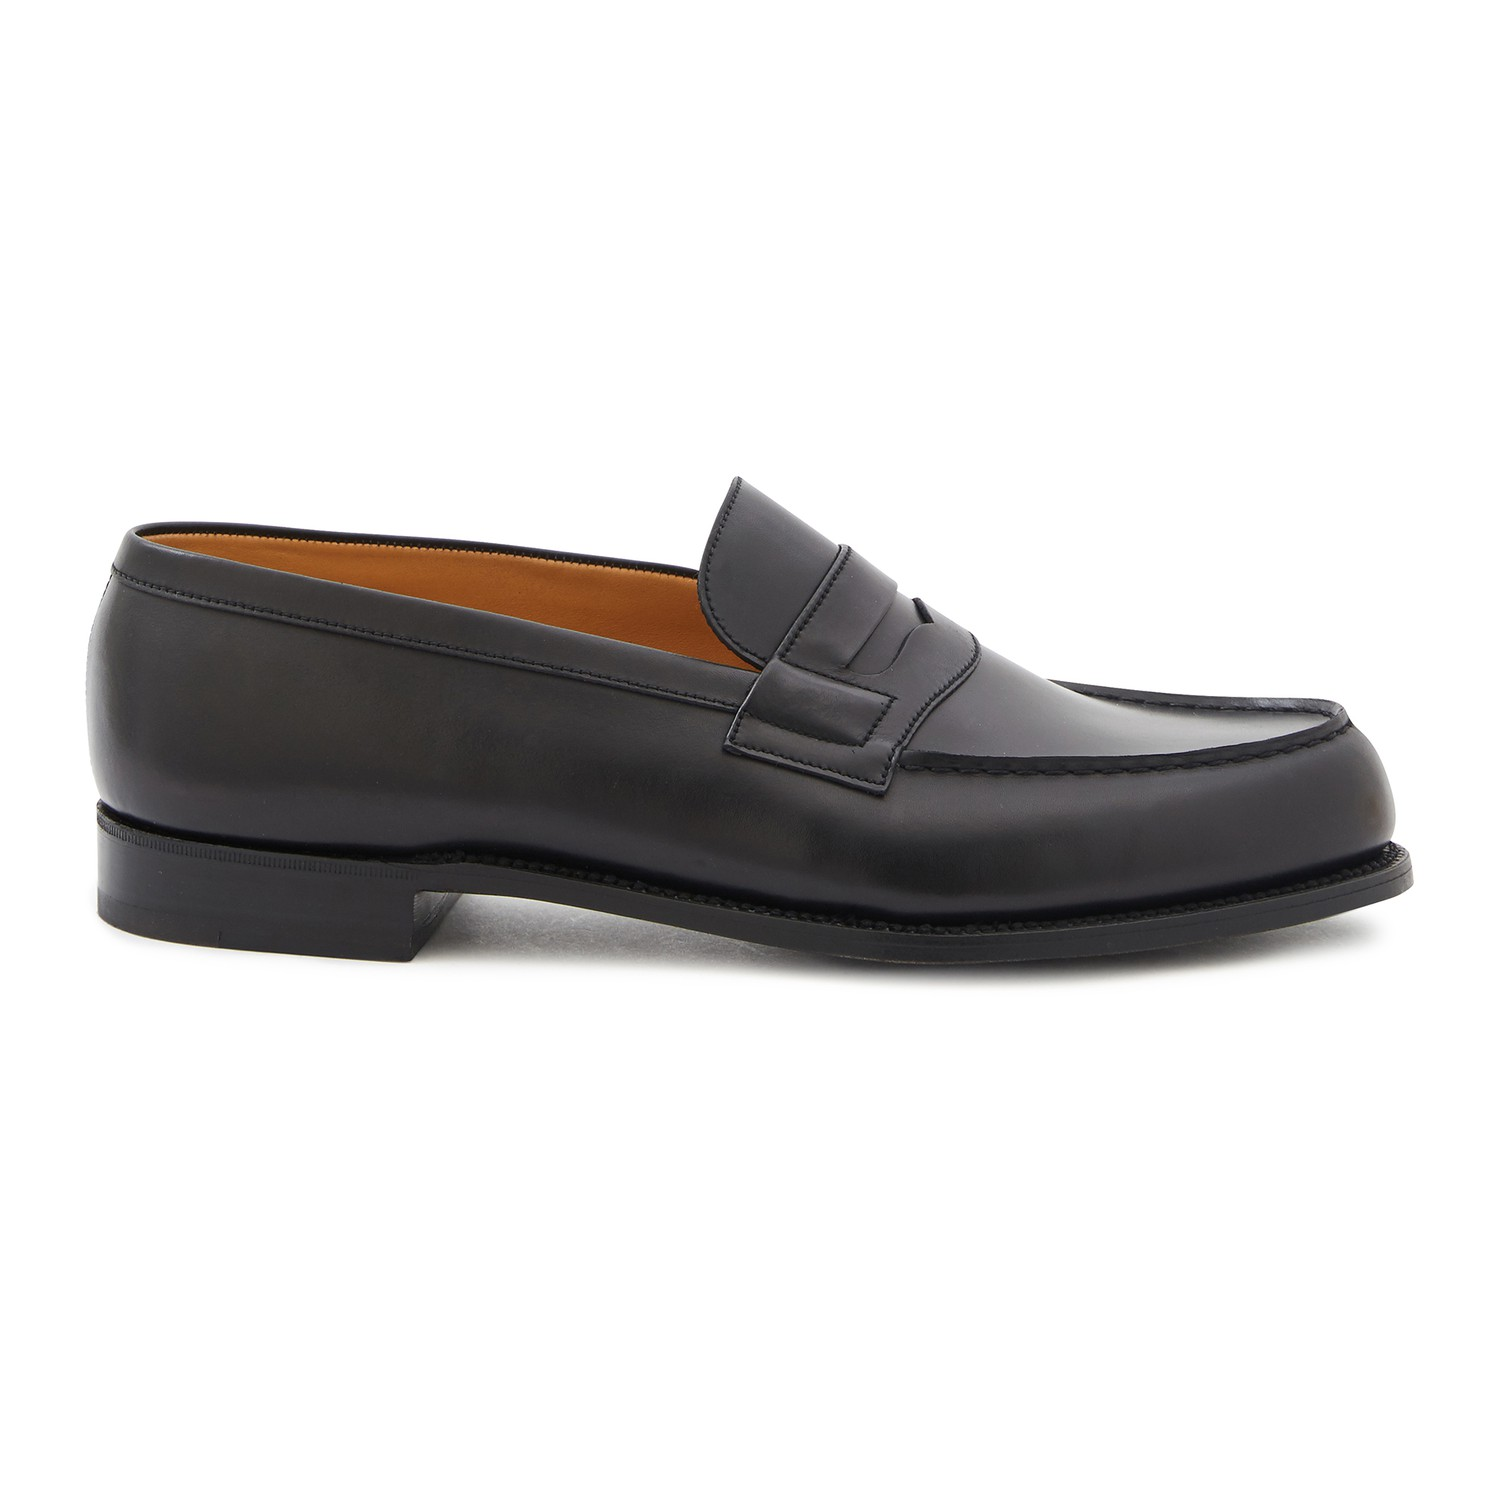 Jm Weston 180 Loafers In Black